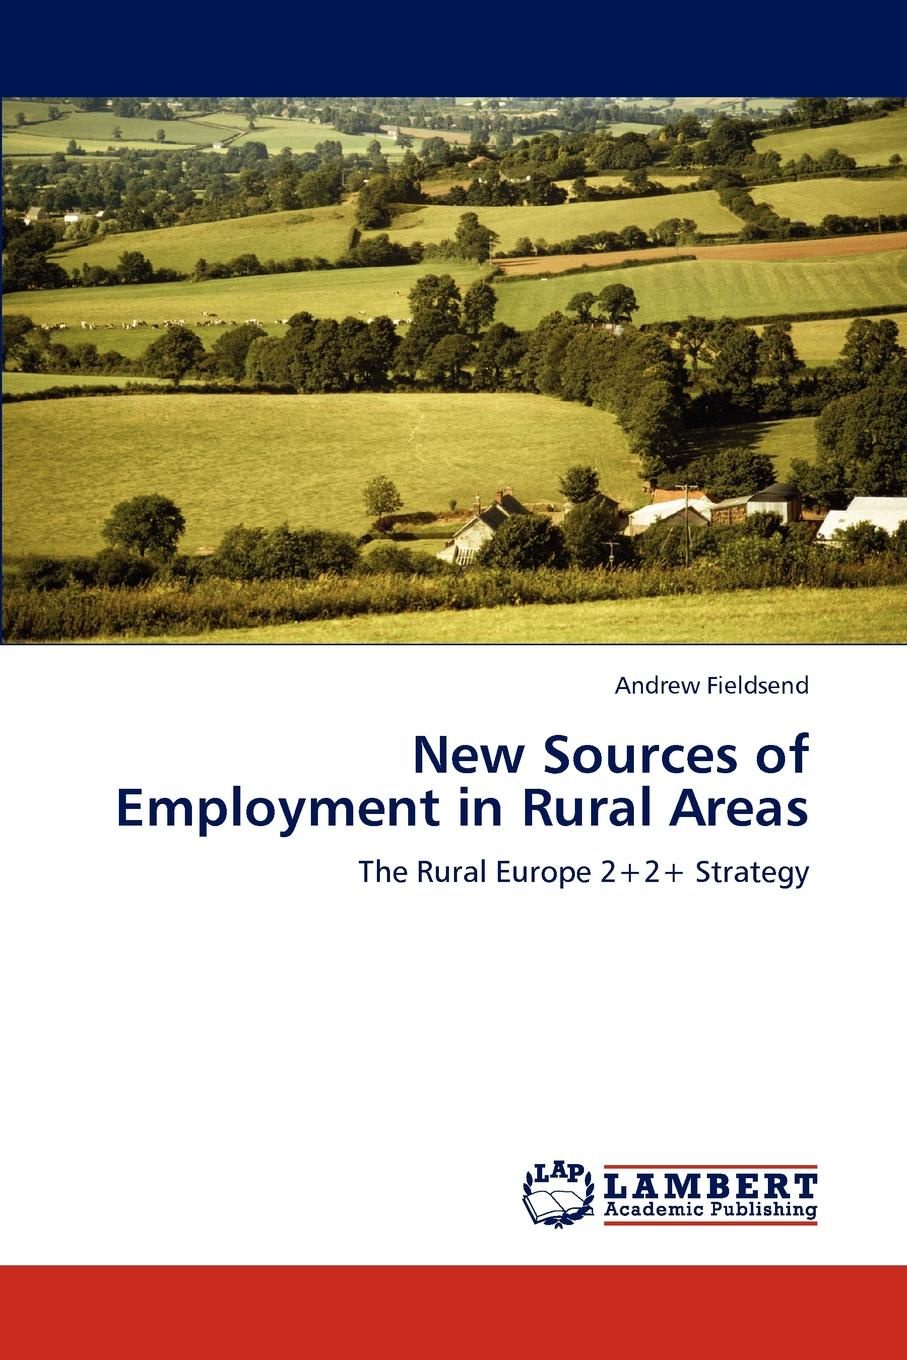 Andrew Fieldsend New Sources of Employment in Rural Areas think rural